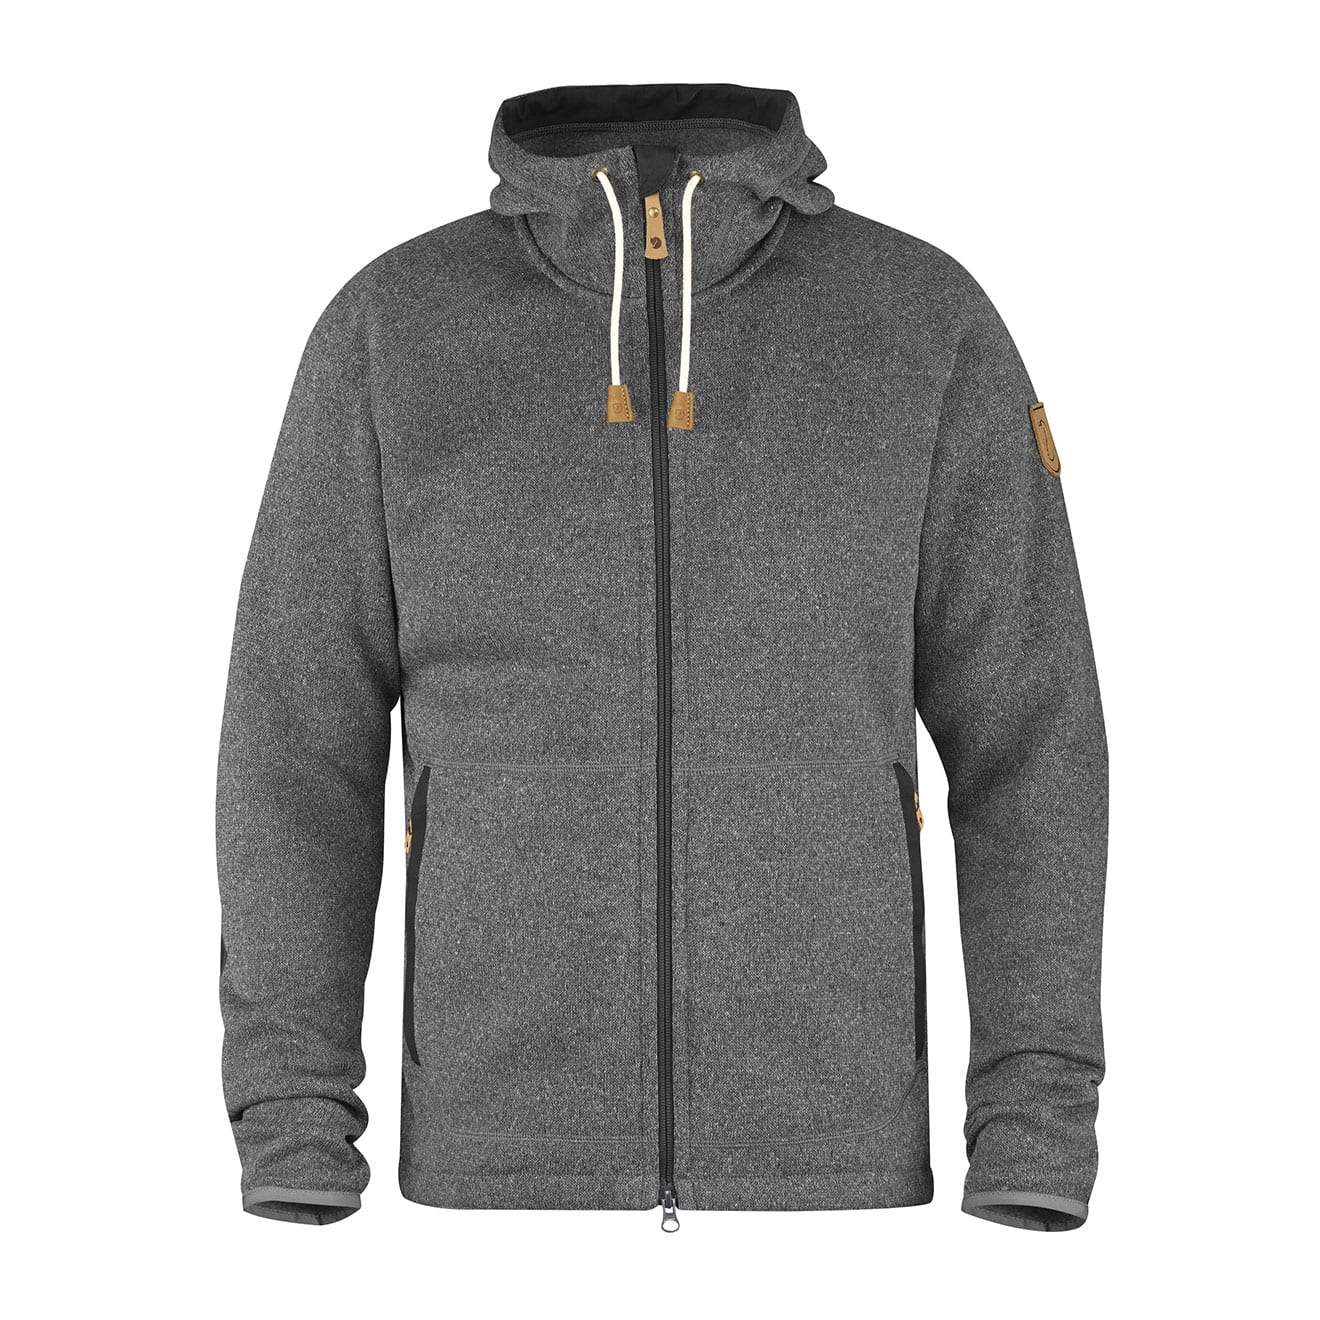 Details about SALE EVENT! Fjallraven Ovik Fleece Hoodie Dark Grey